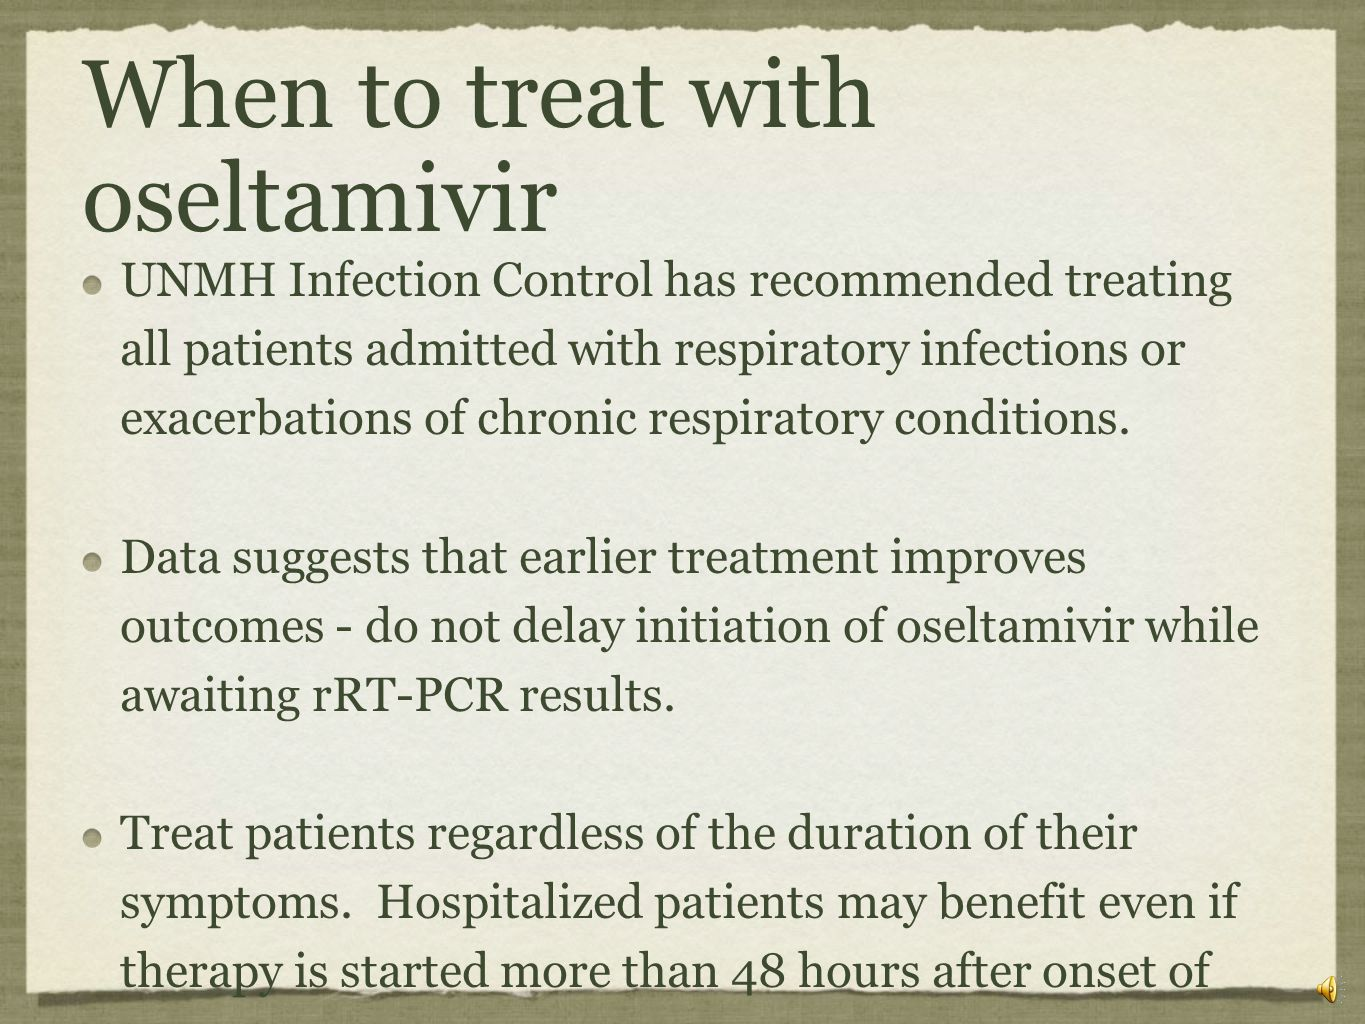 When to treat with oseltamivir